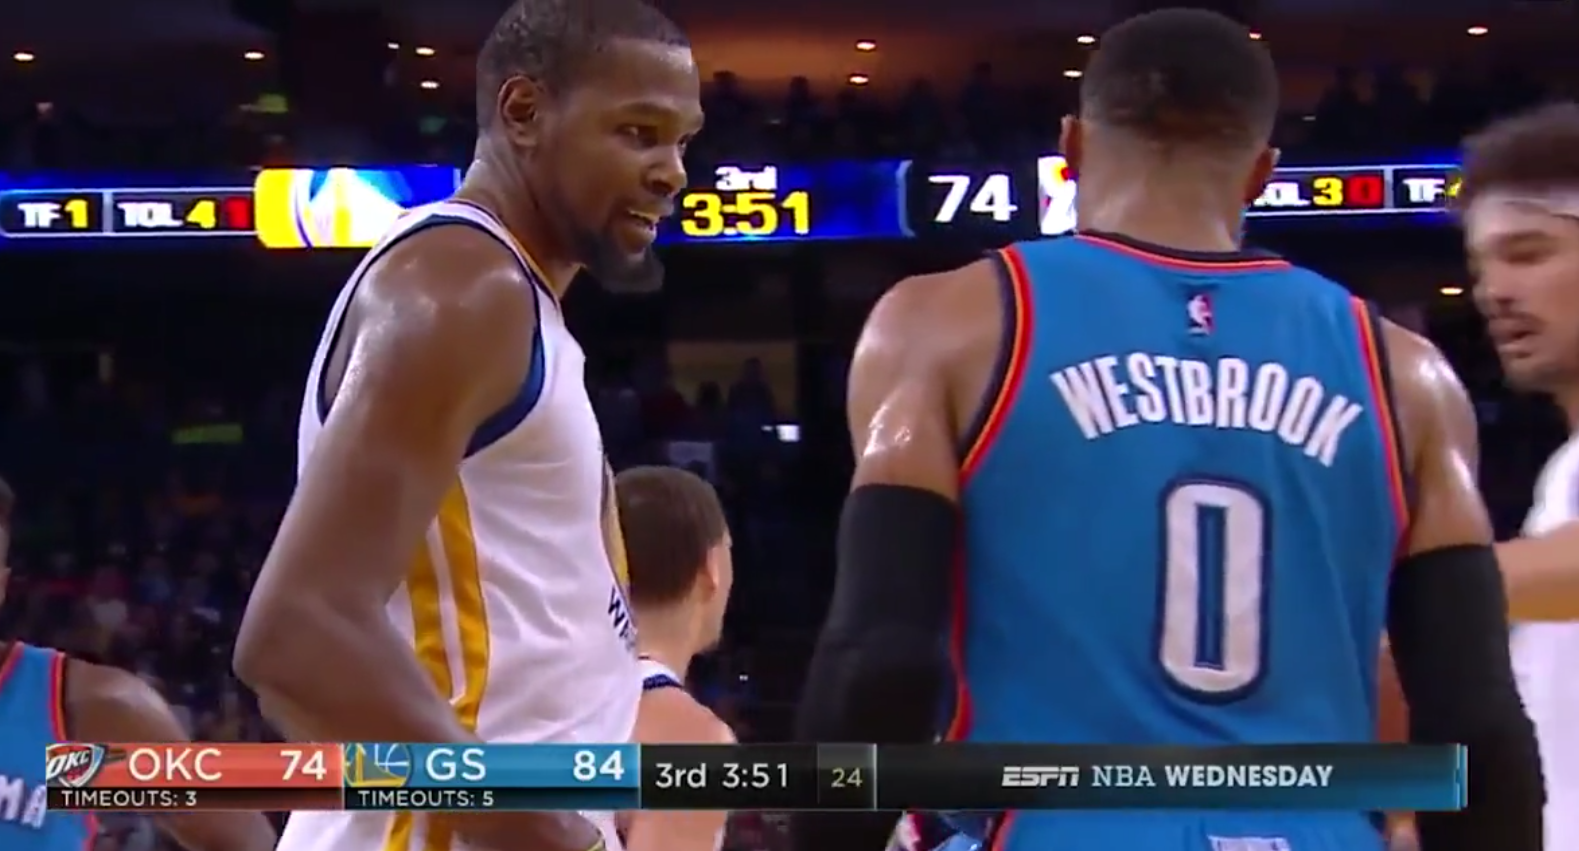 KD valide « involontairement » un com anti-Westbrook